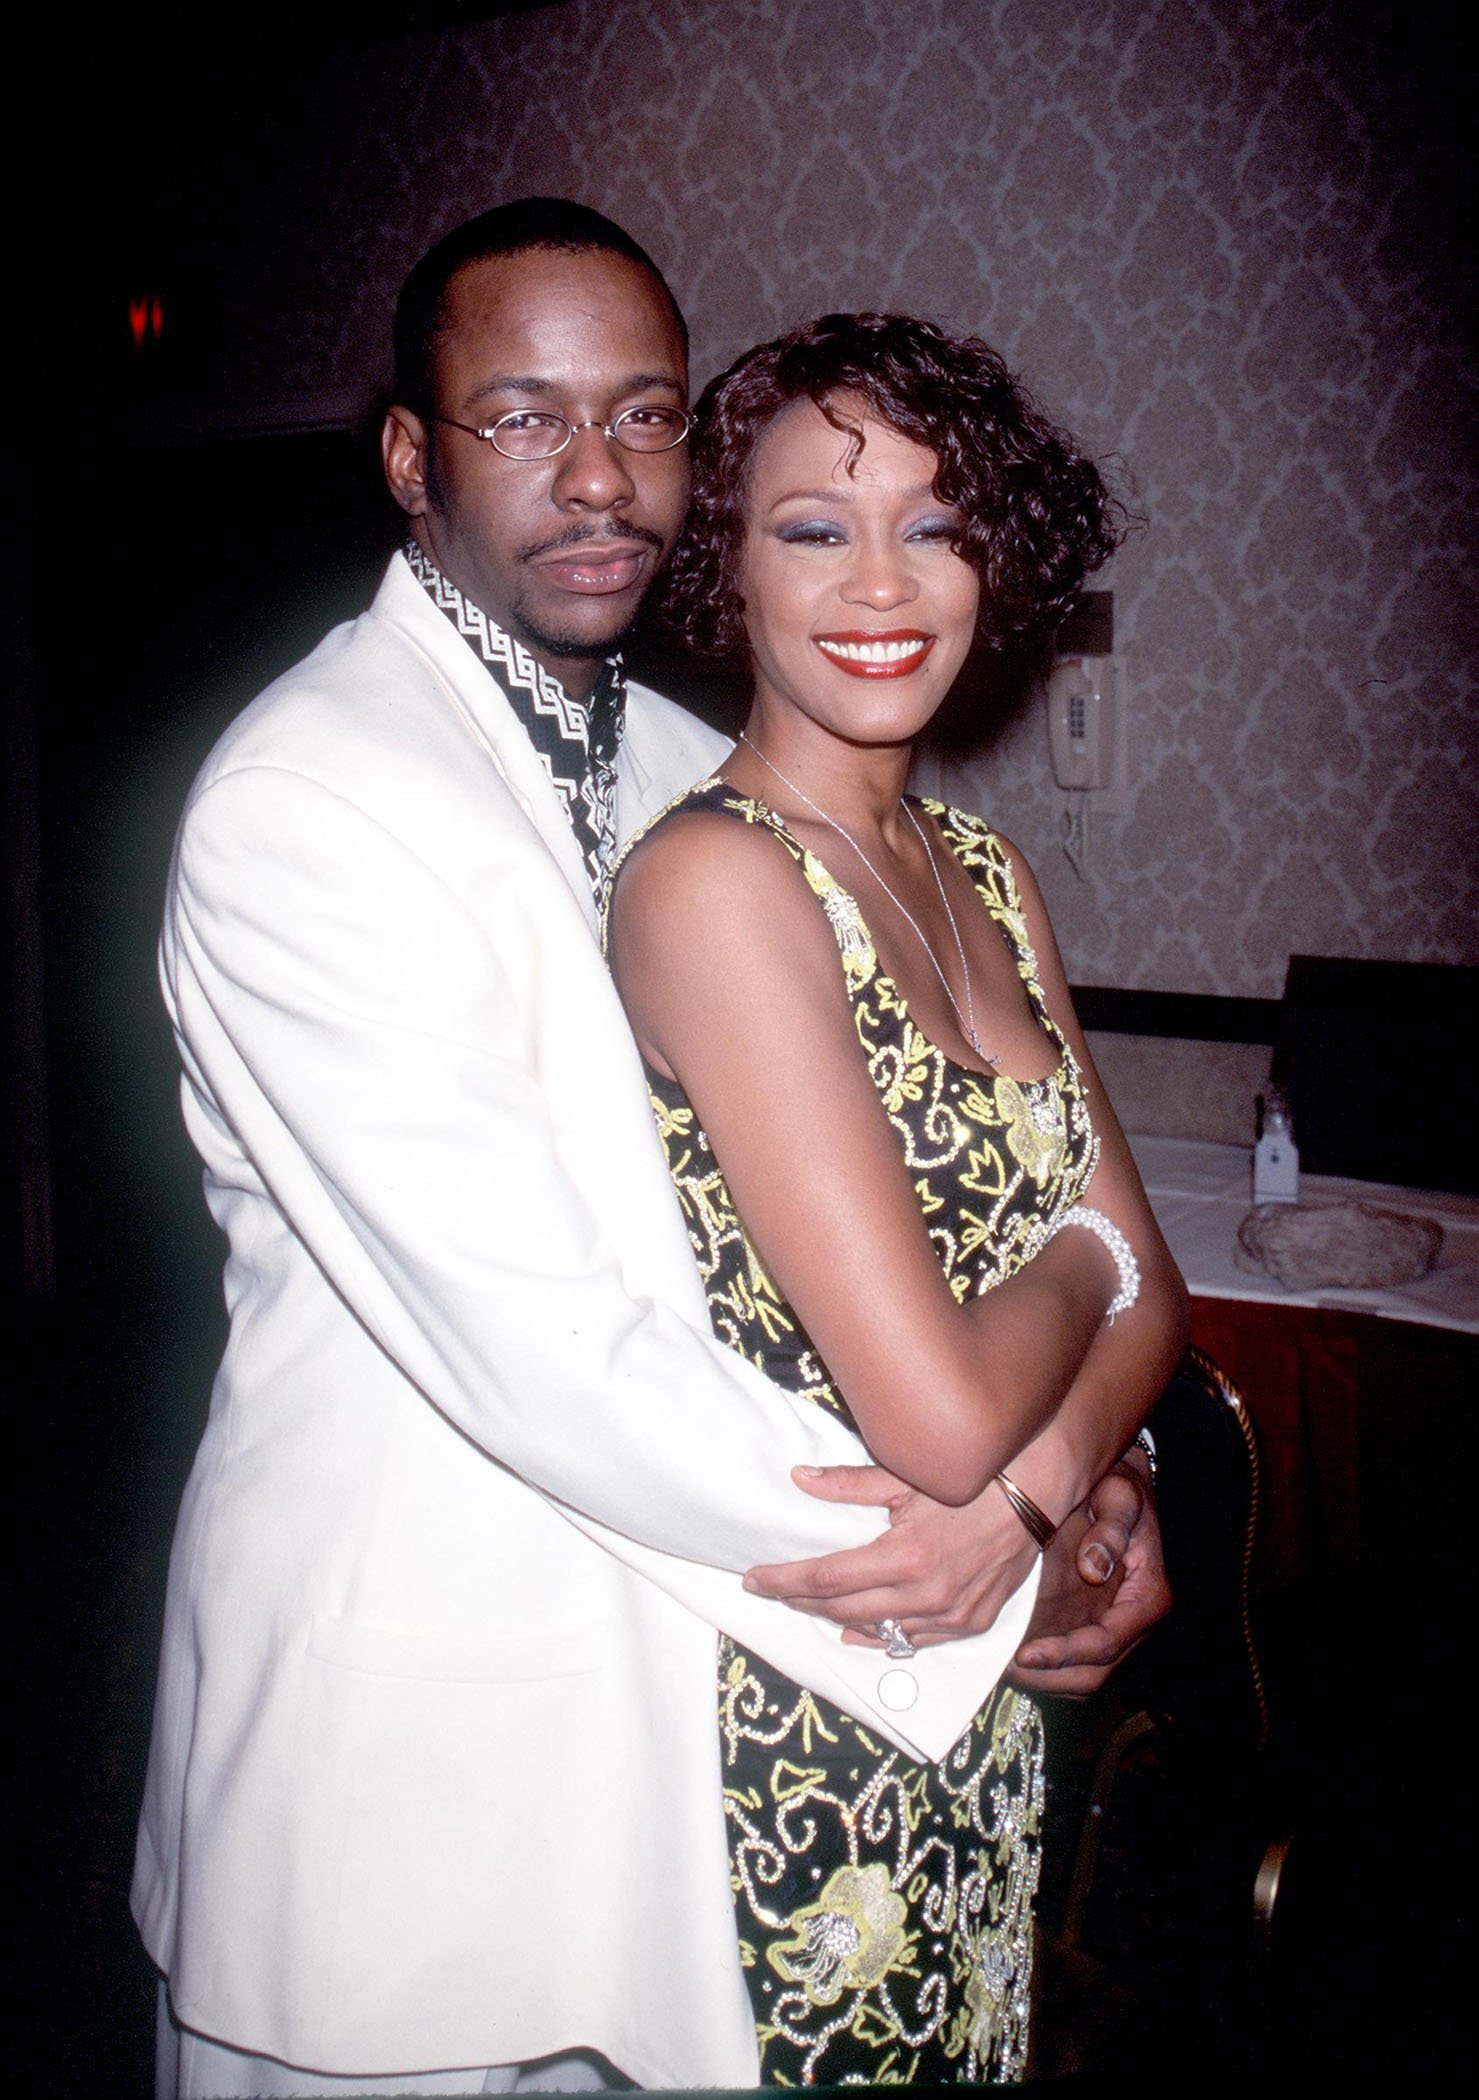 Bobby Brown and Whitney Houston in New York, NY, on December 4, 1999 | Photo: Getty Images